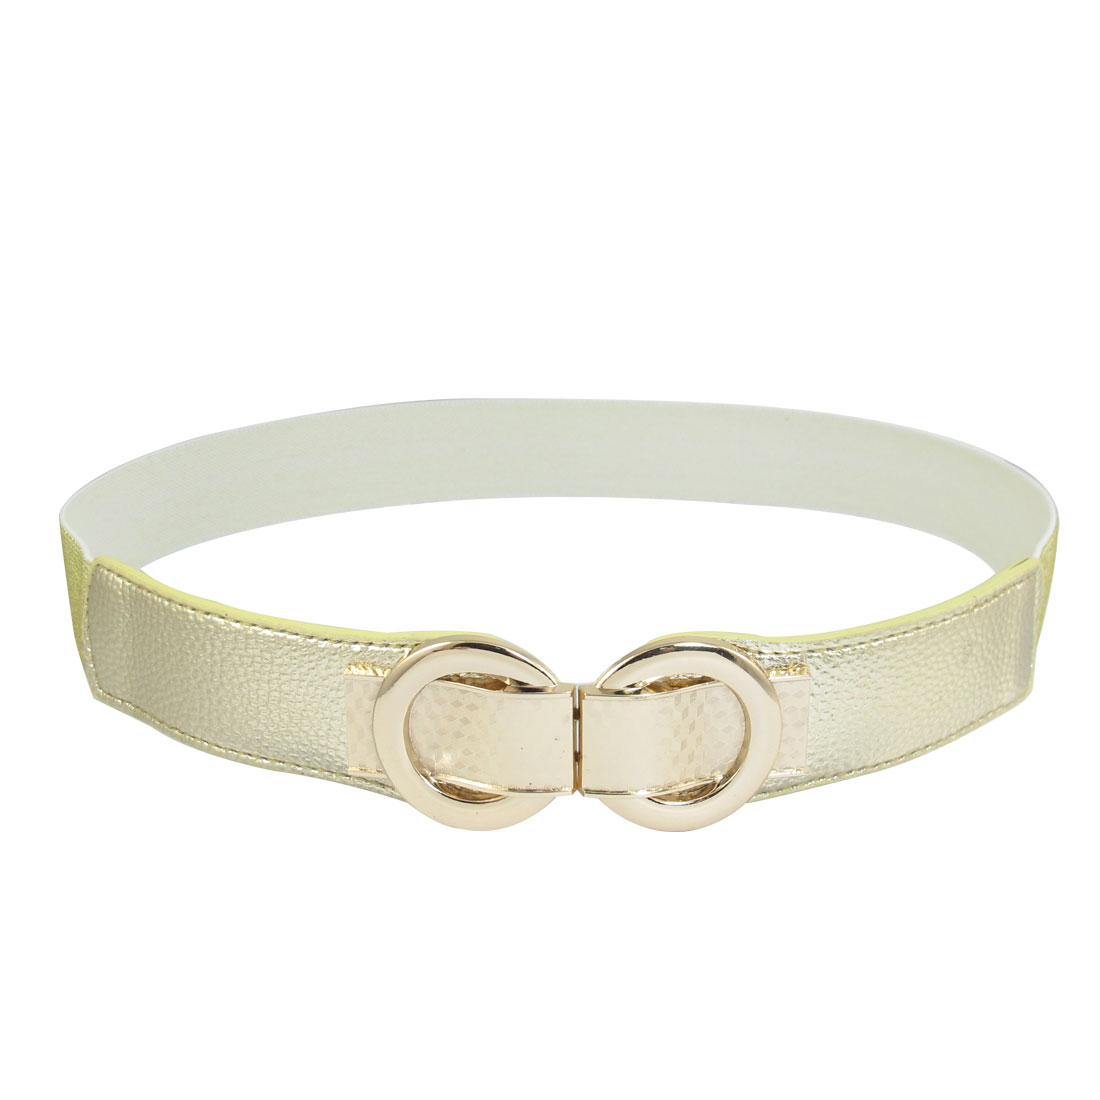 Gold Tone Faux Leather Metal Interlock Buckle Elastic Cinch Waist Belt Band